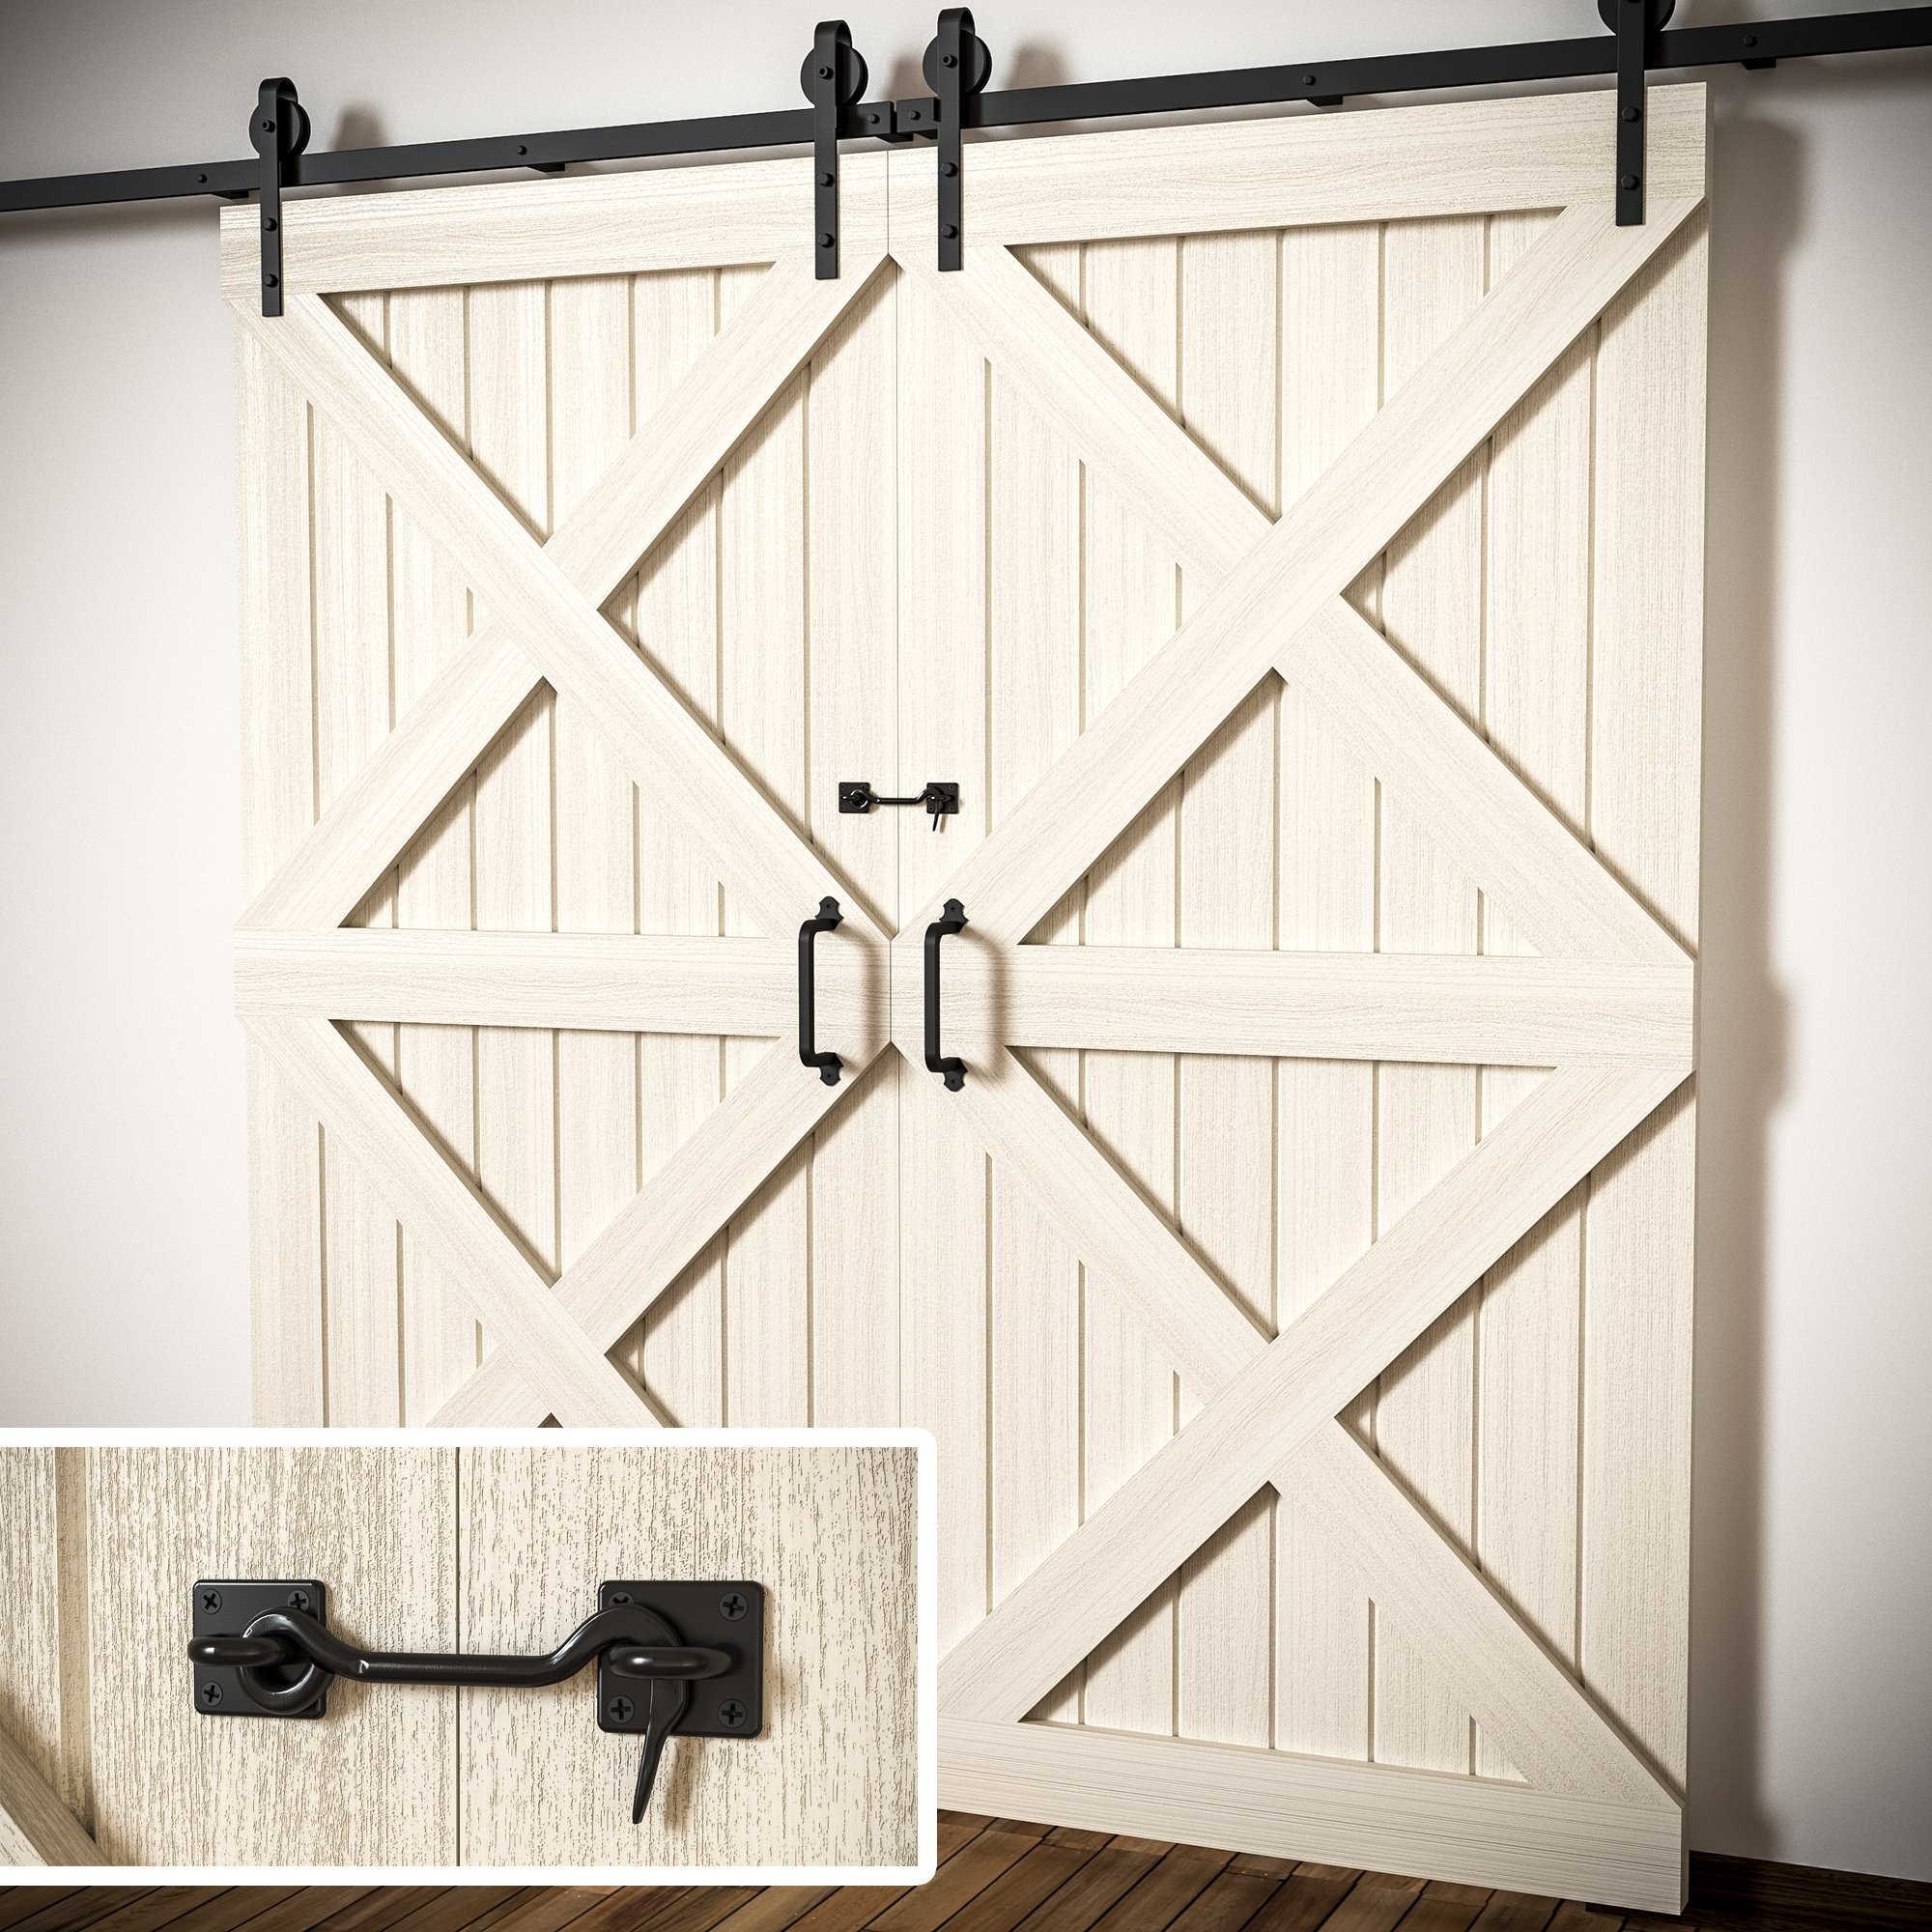 design ideas concepts of barn lock sliding image barns diy sede revista door